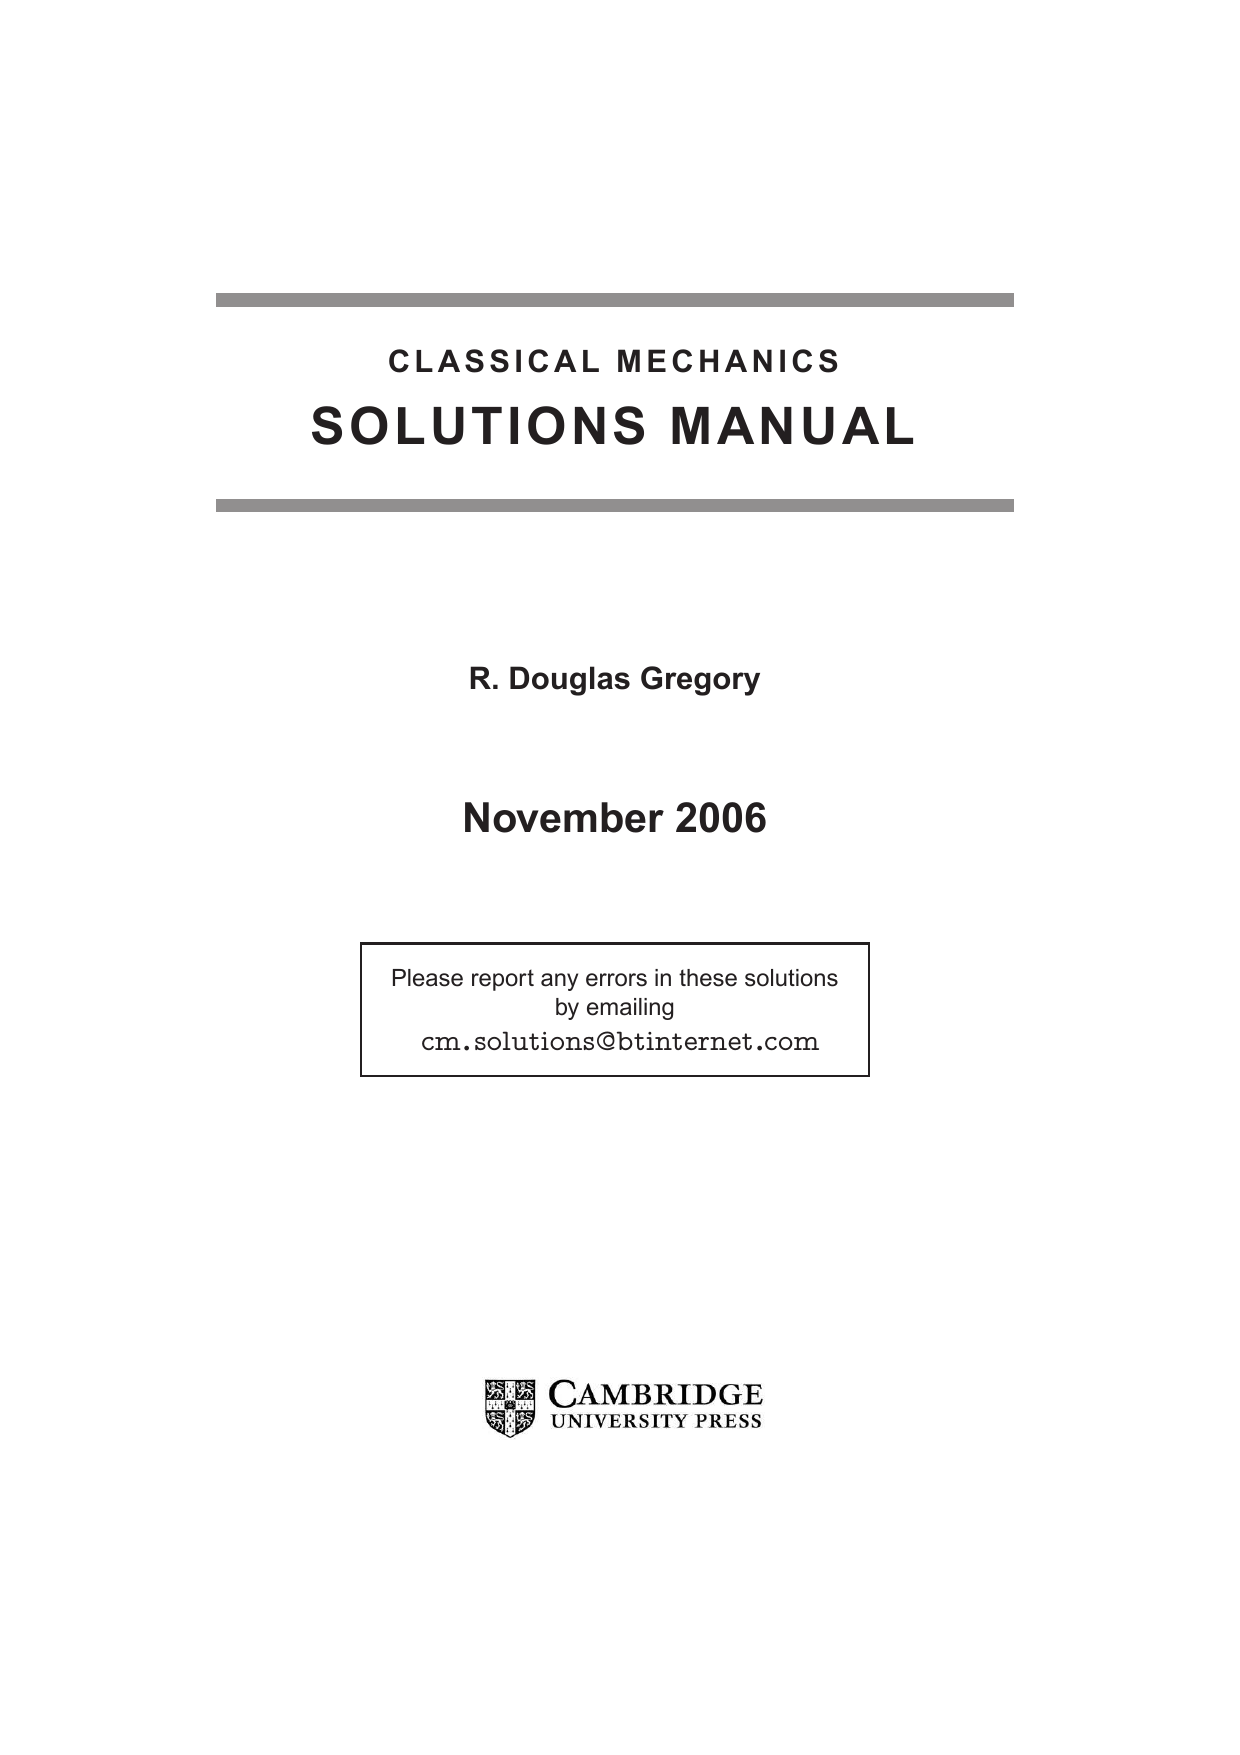 Gregory R.D. - Solutions manual for Classical mechanics (2006 CUP).pdf